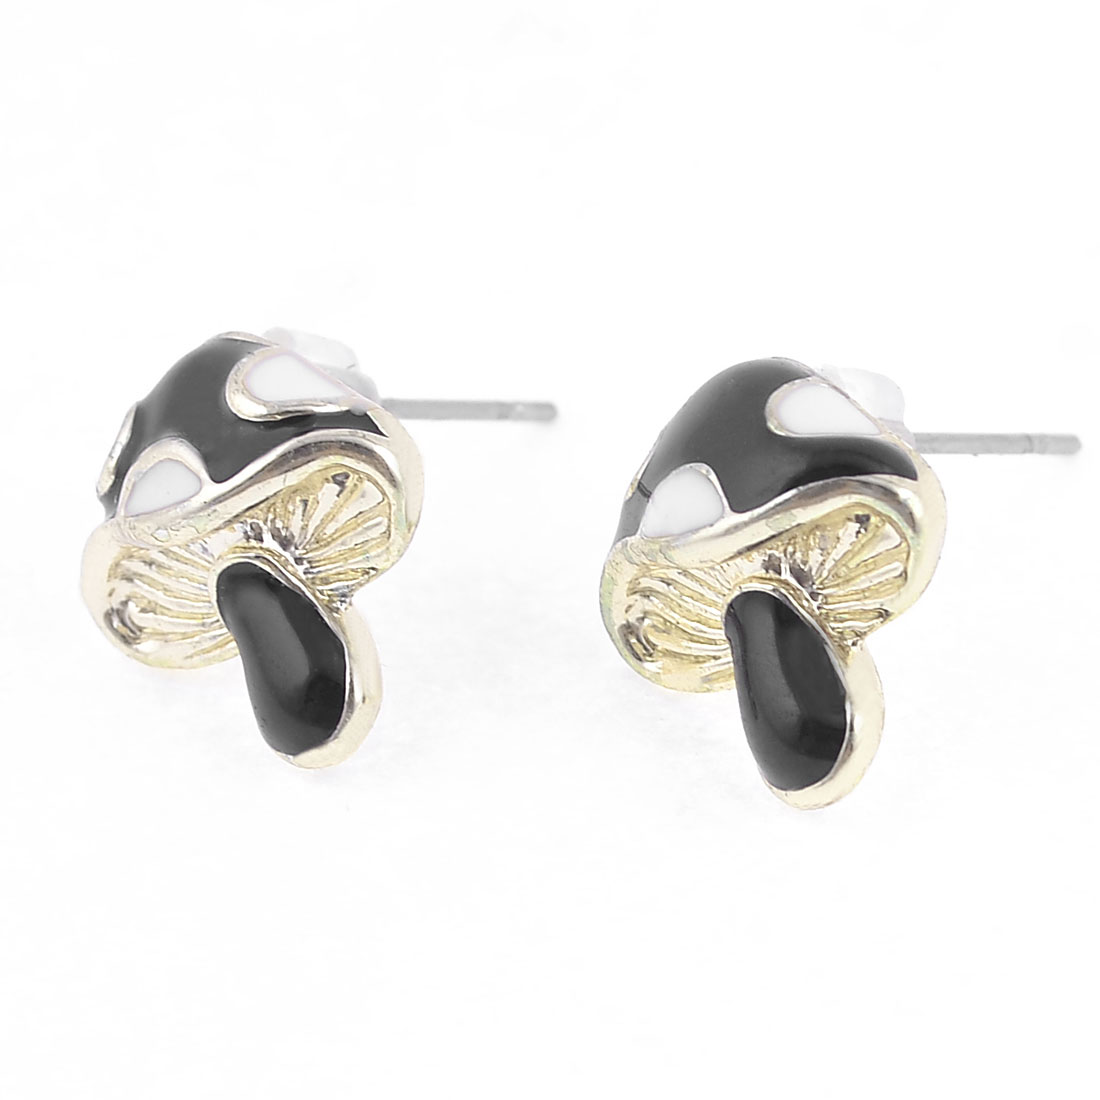 Lady Ear Decor Mashroom Detail Stud Earrings Black White Pair